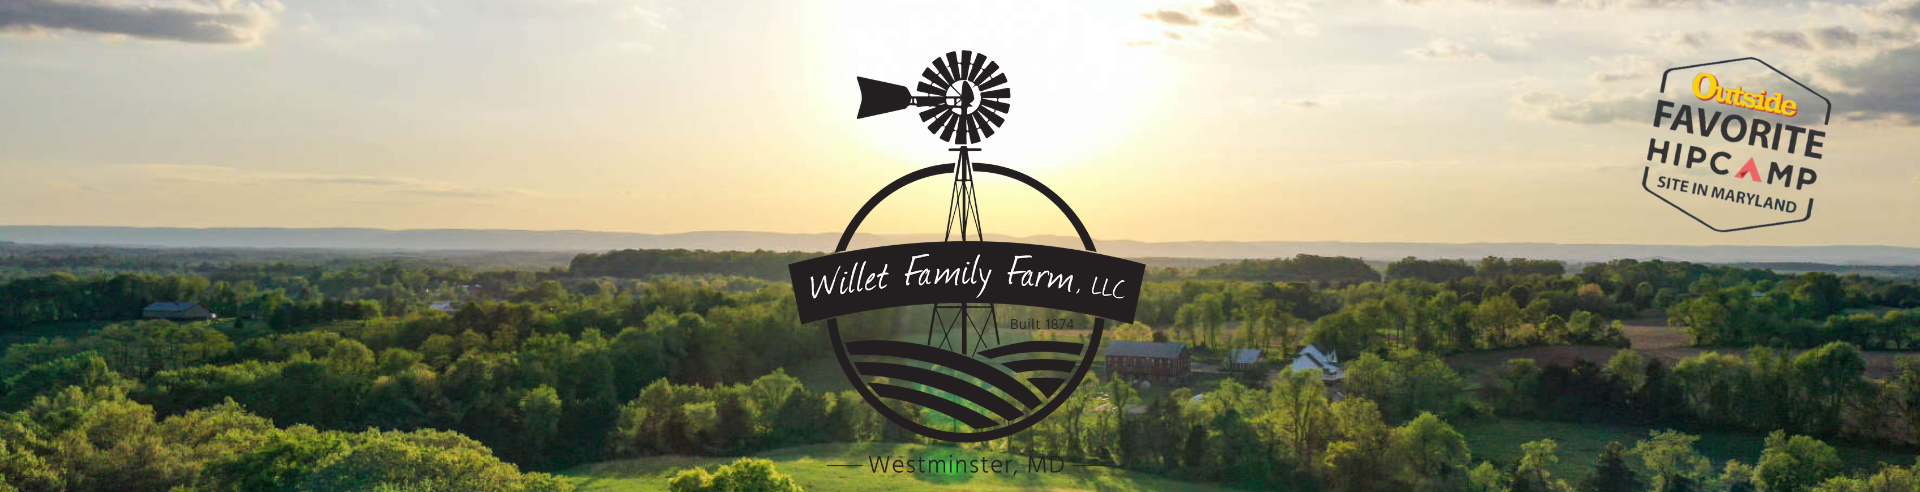 Willet Family Farm, LLC